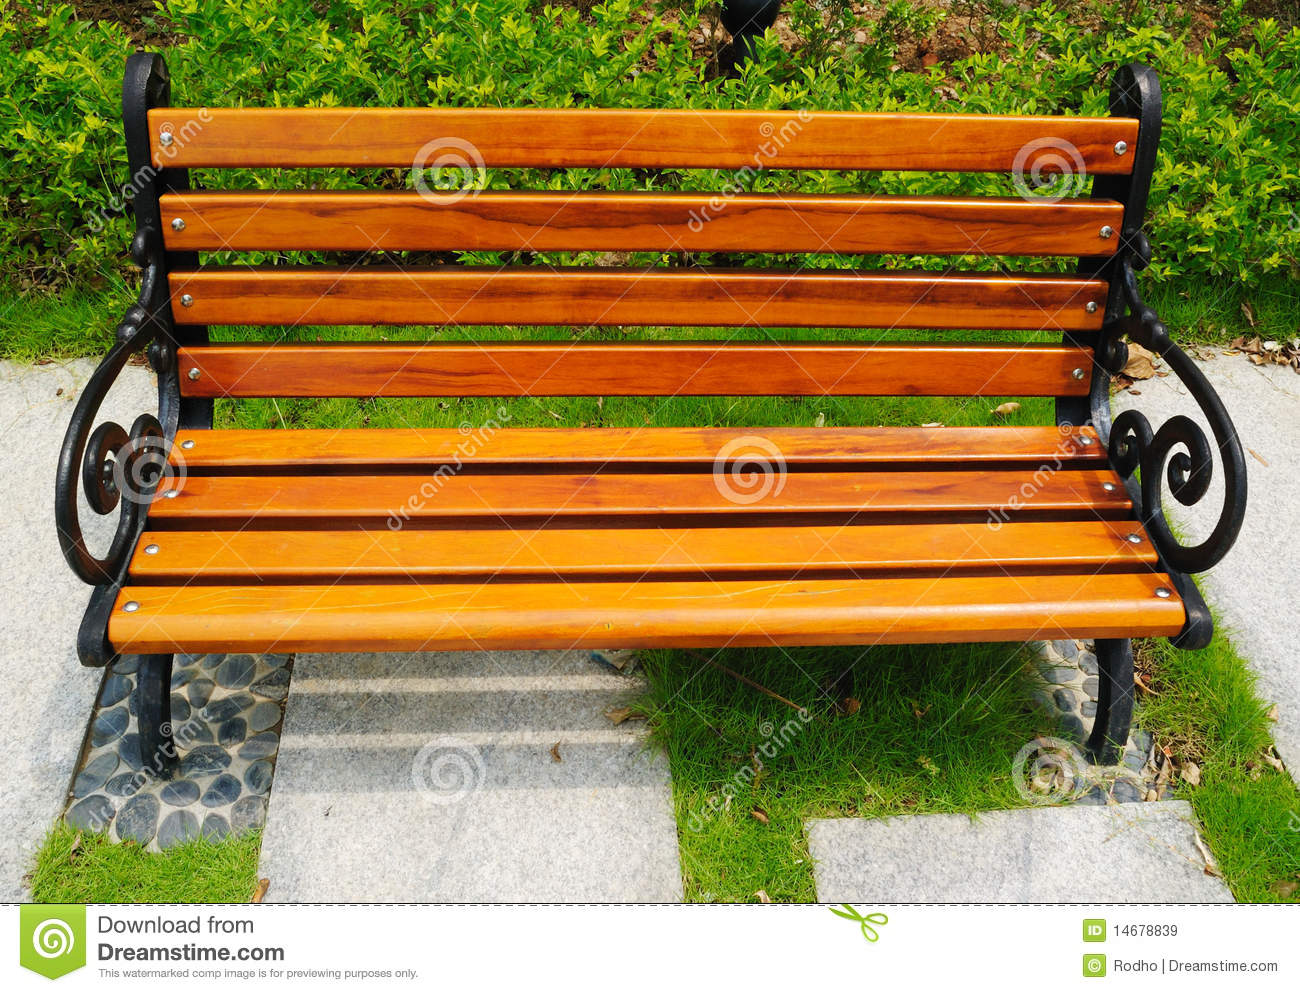 Wooden park bench at a park in China.